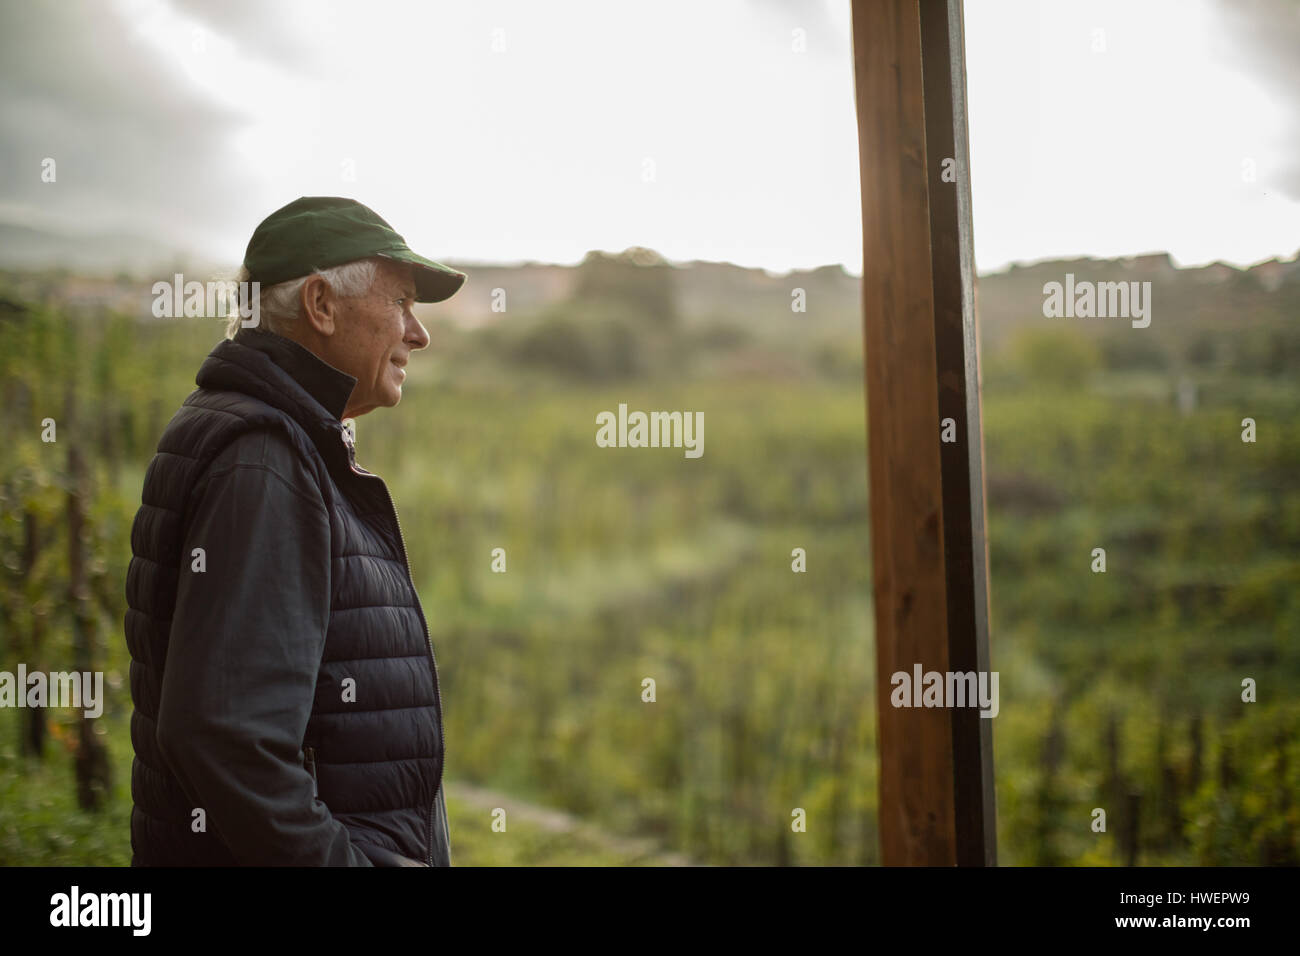 Senior man looking out over vineyard  landscape Stock Photo